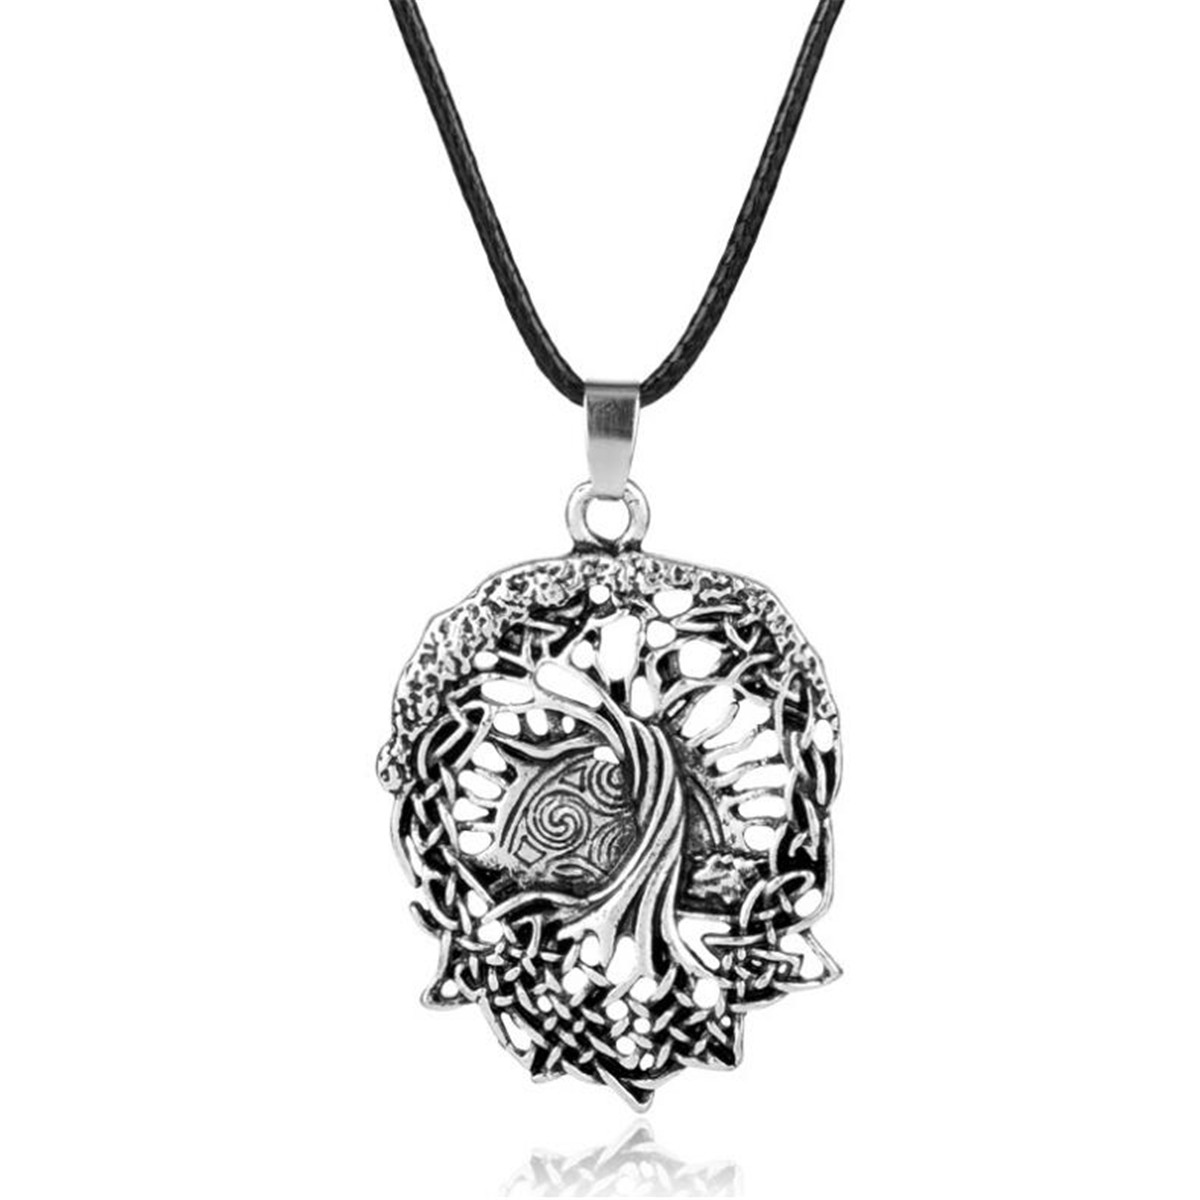 Men/'s Vintage Norse Tree of Life Pendant Knot Amulet Necklace Jewelry